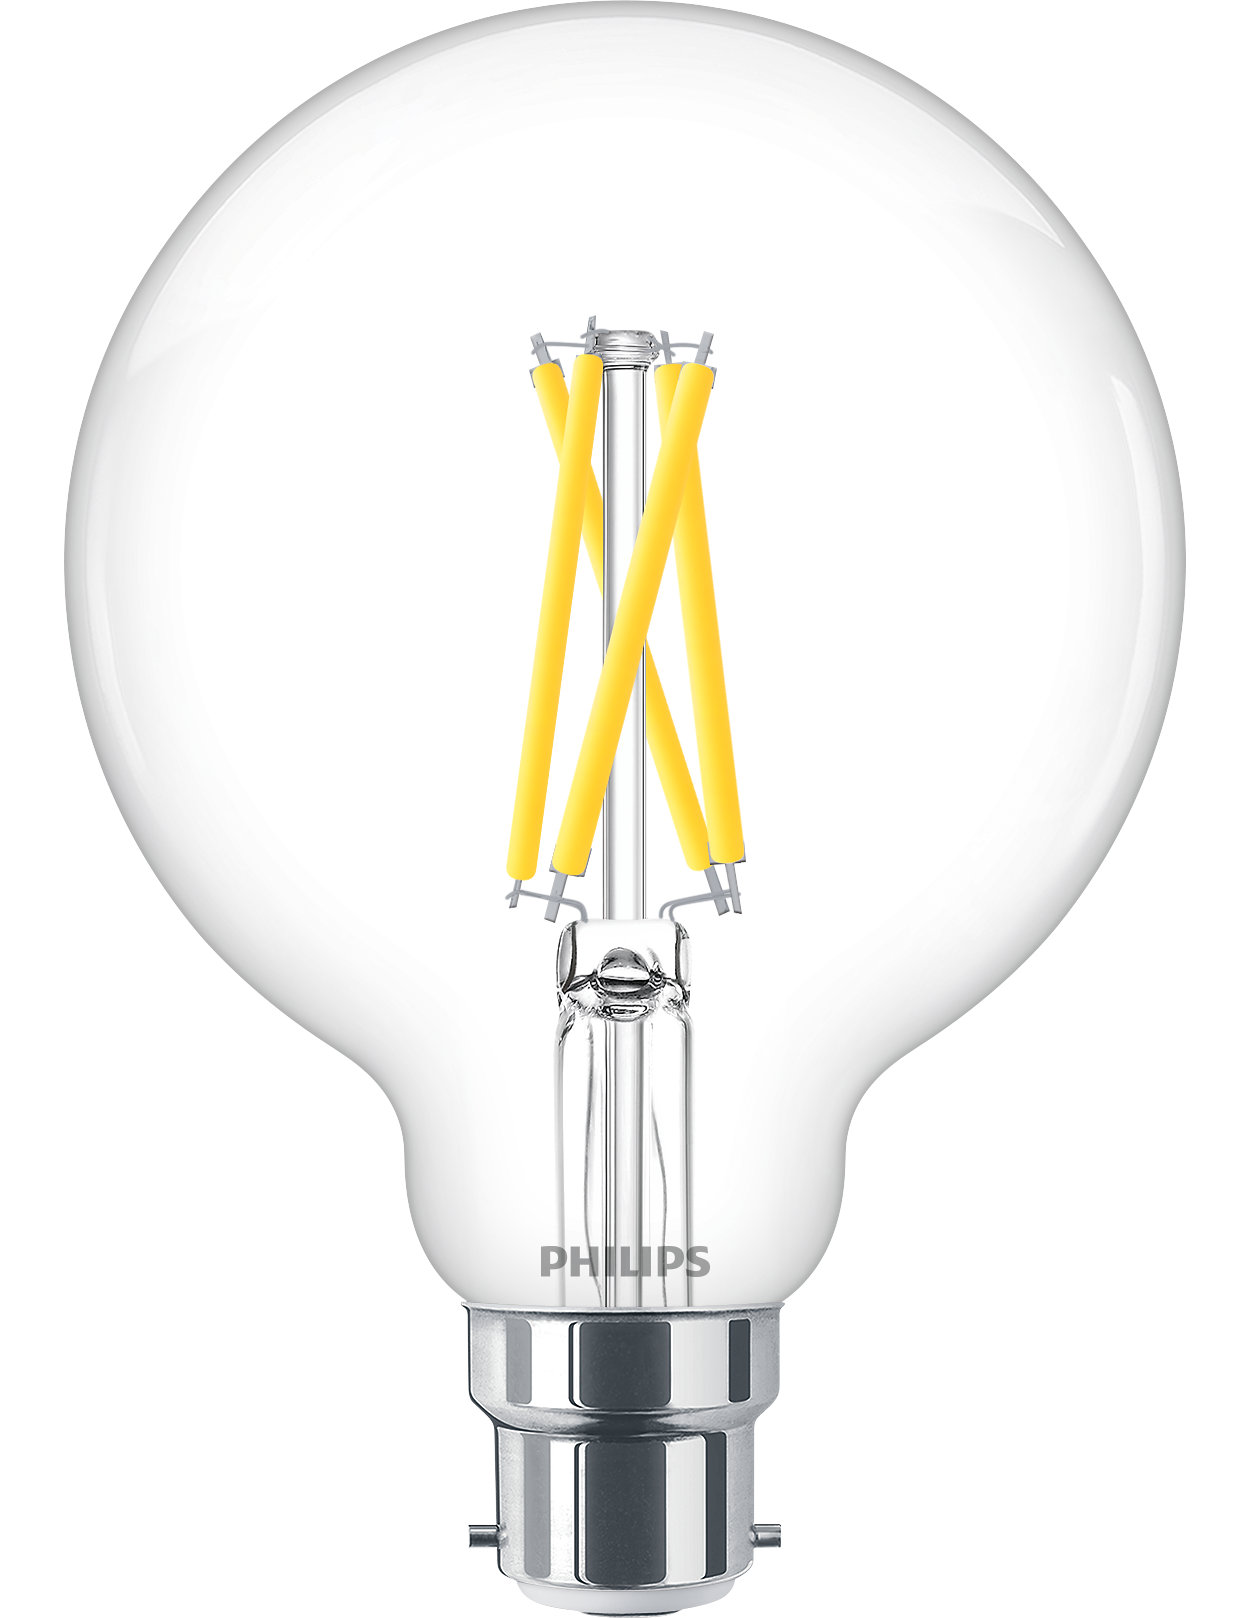 Classic LED lamps for decorative lighting